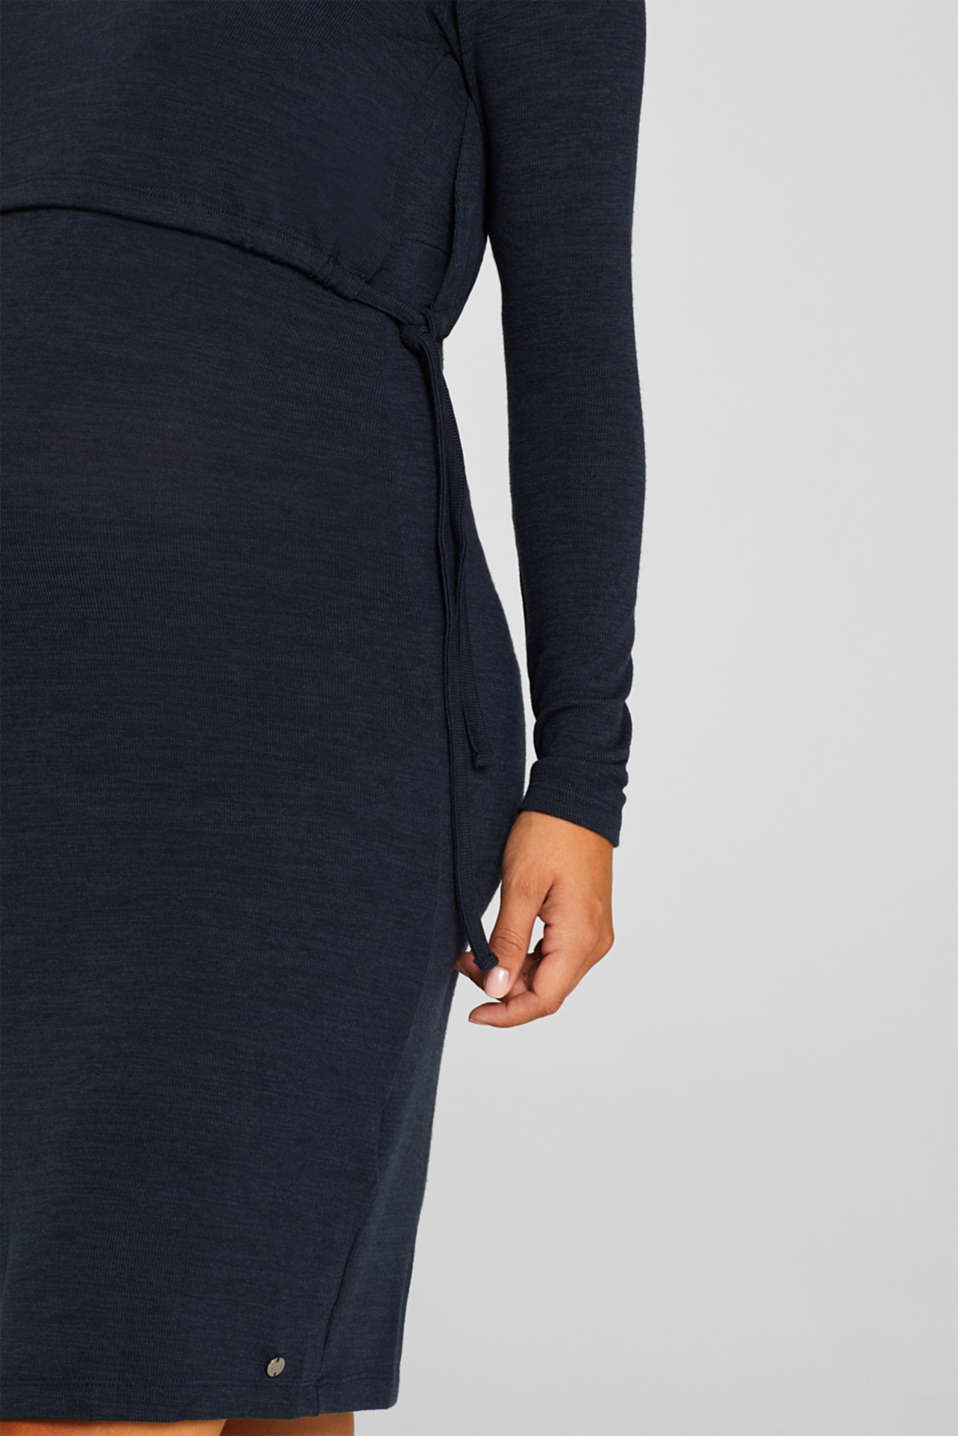 Stretch jersey nursing dress, LCNIGHT BLUE, detail image number 3